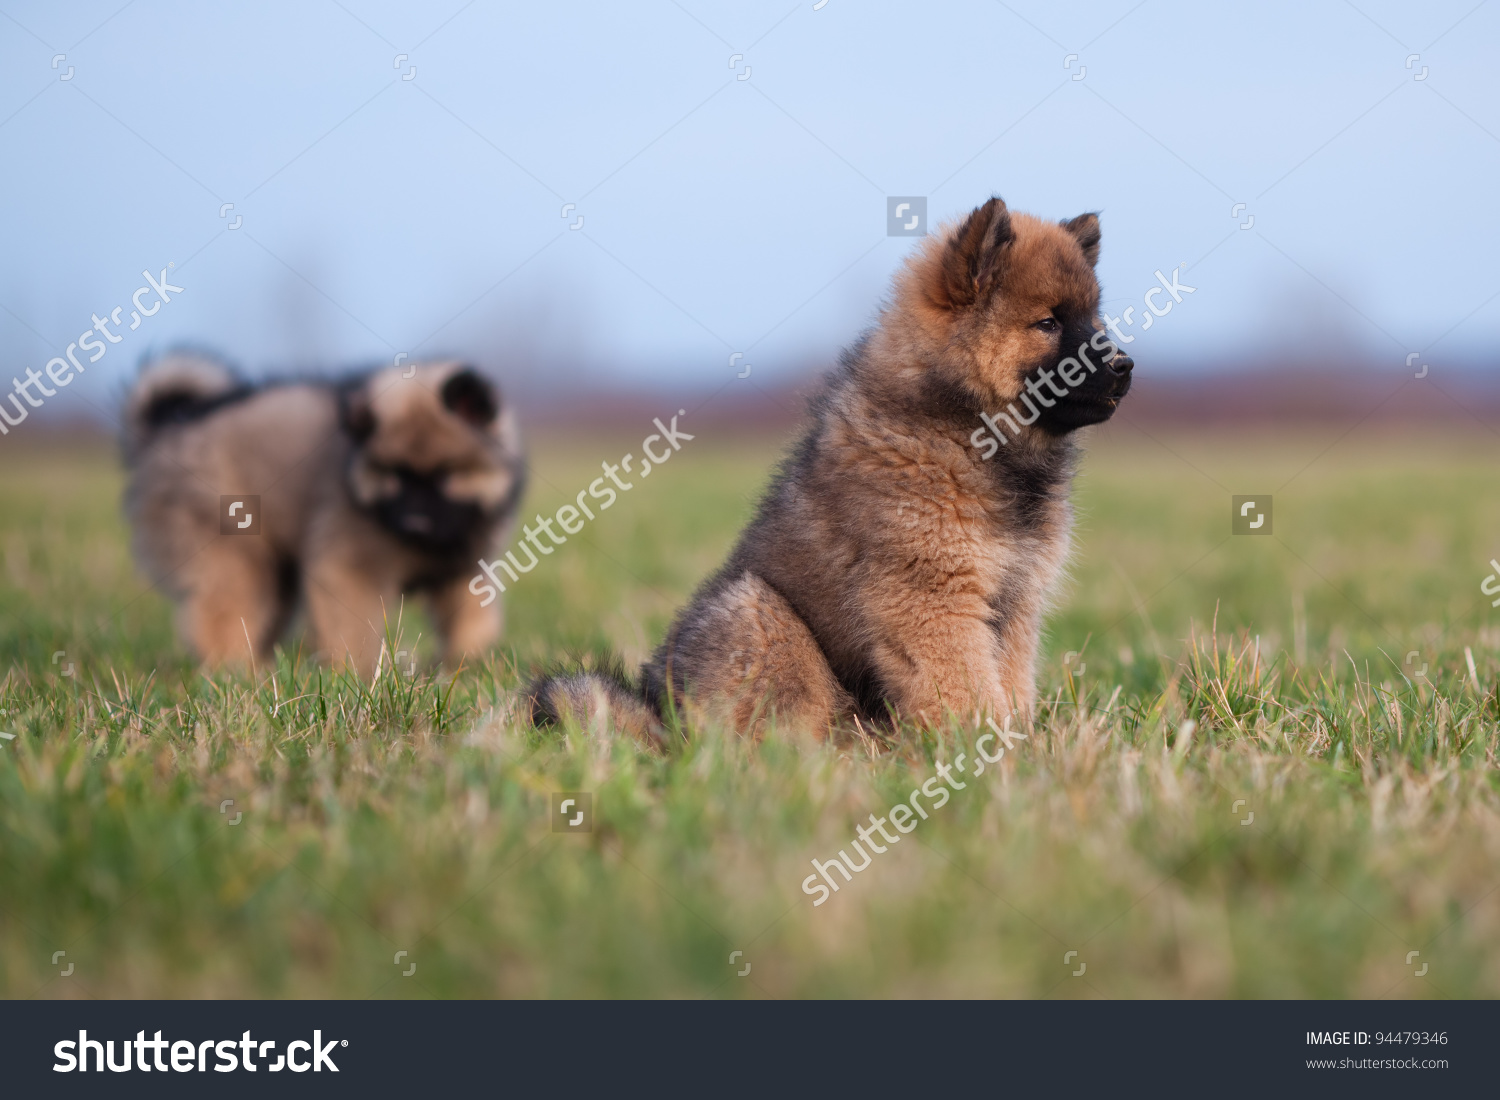 Eurasier clipart #5, Download drawings